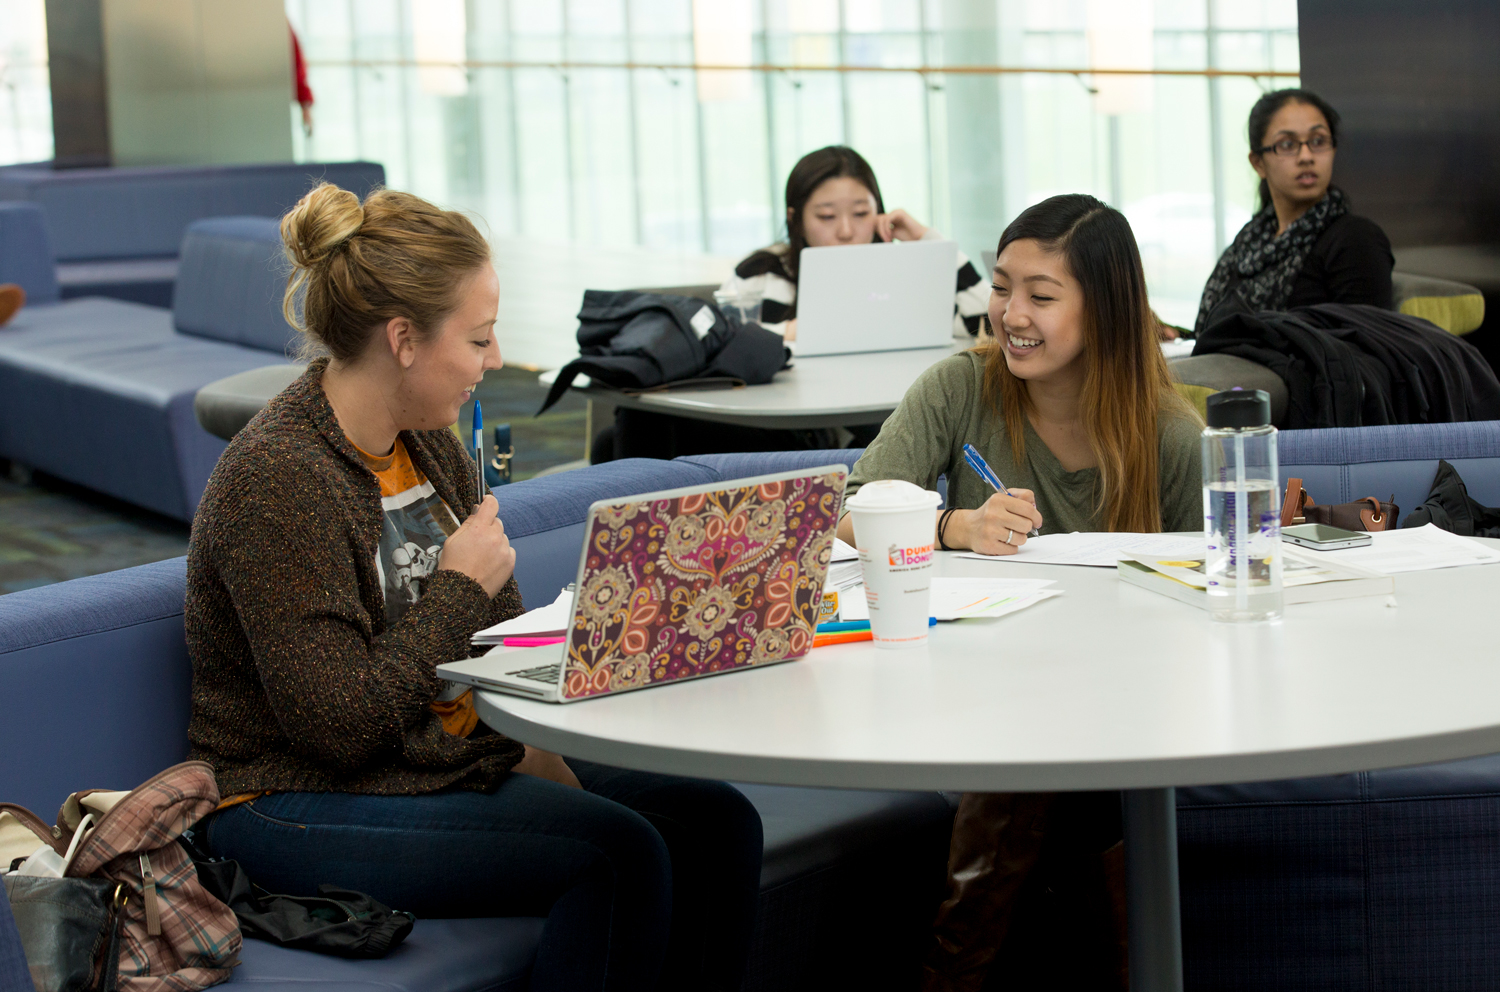 Students studying in a study lounge